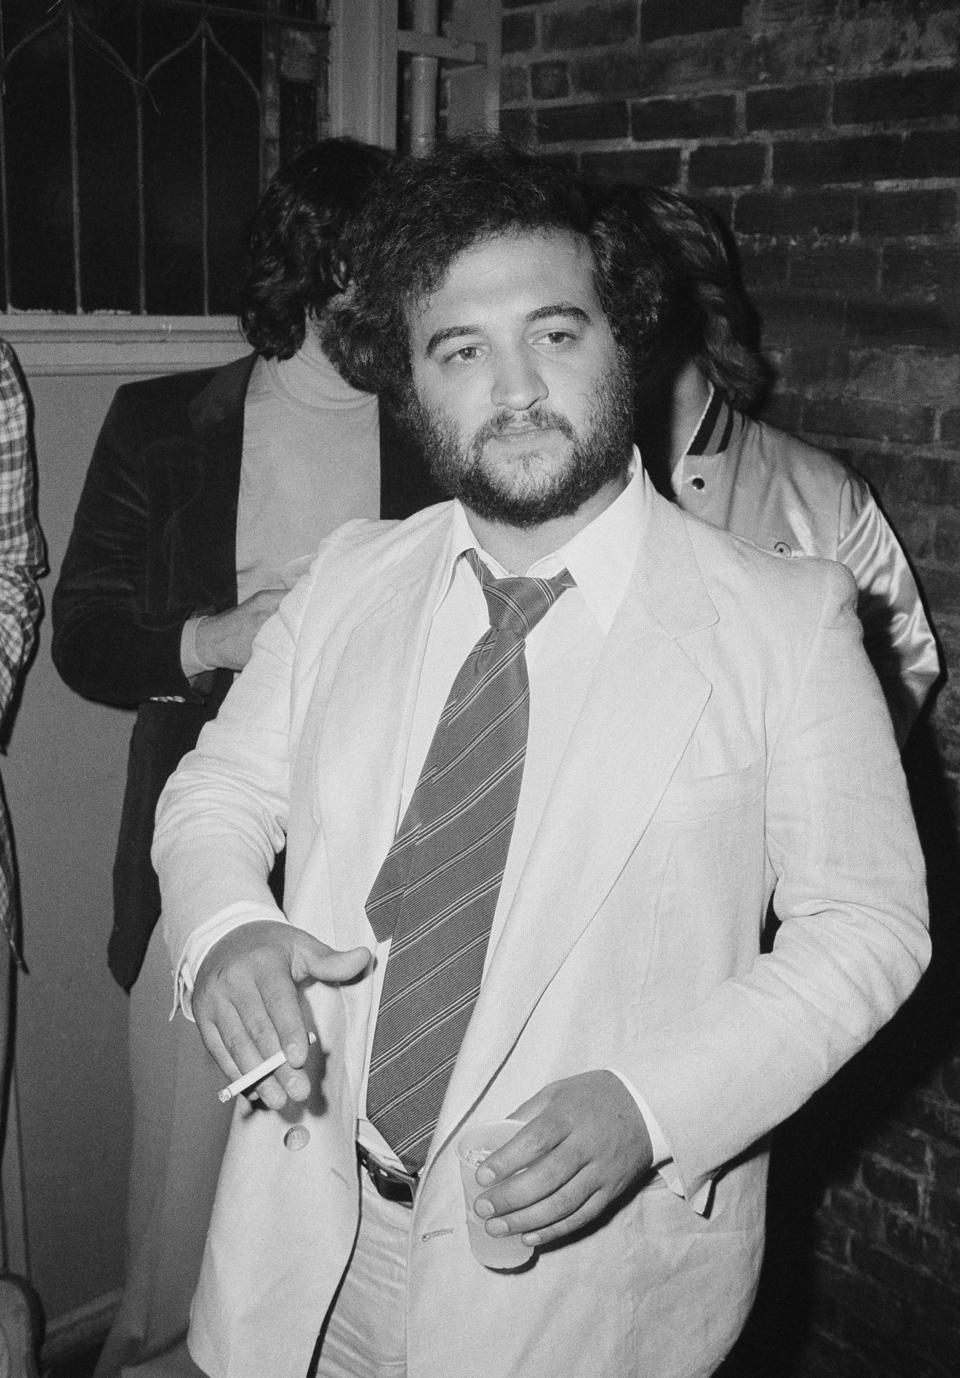 John Belushi's ghost supposedly haunts the site of his death, a bungalow at Chateau Marmont. (Photo: AP)